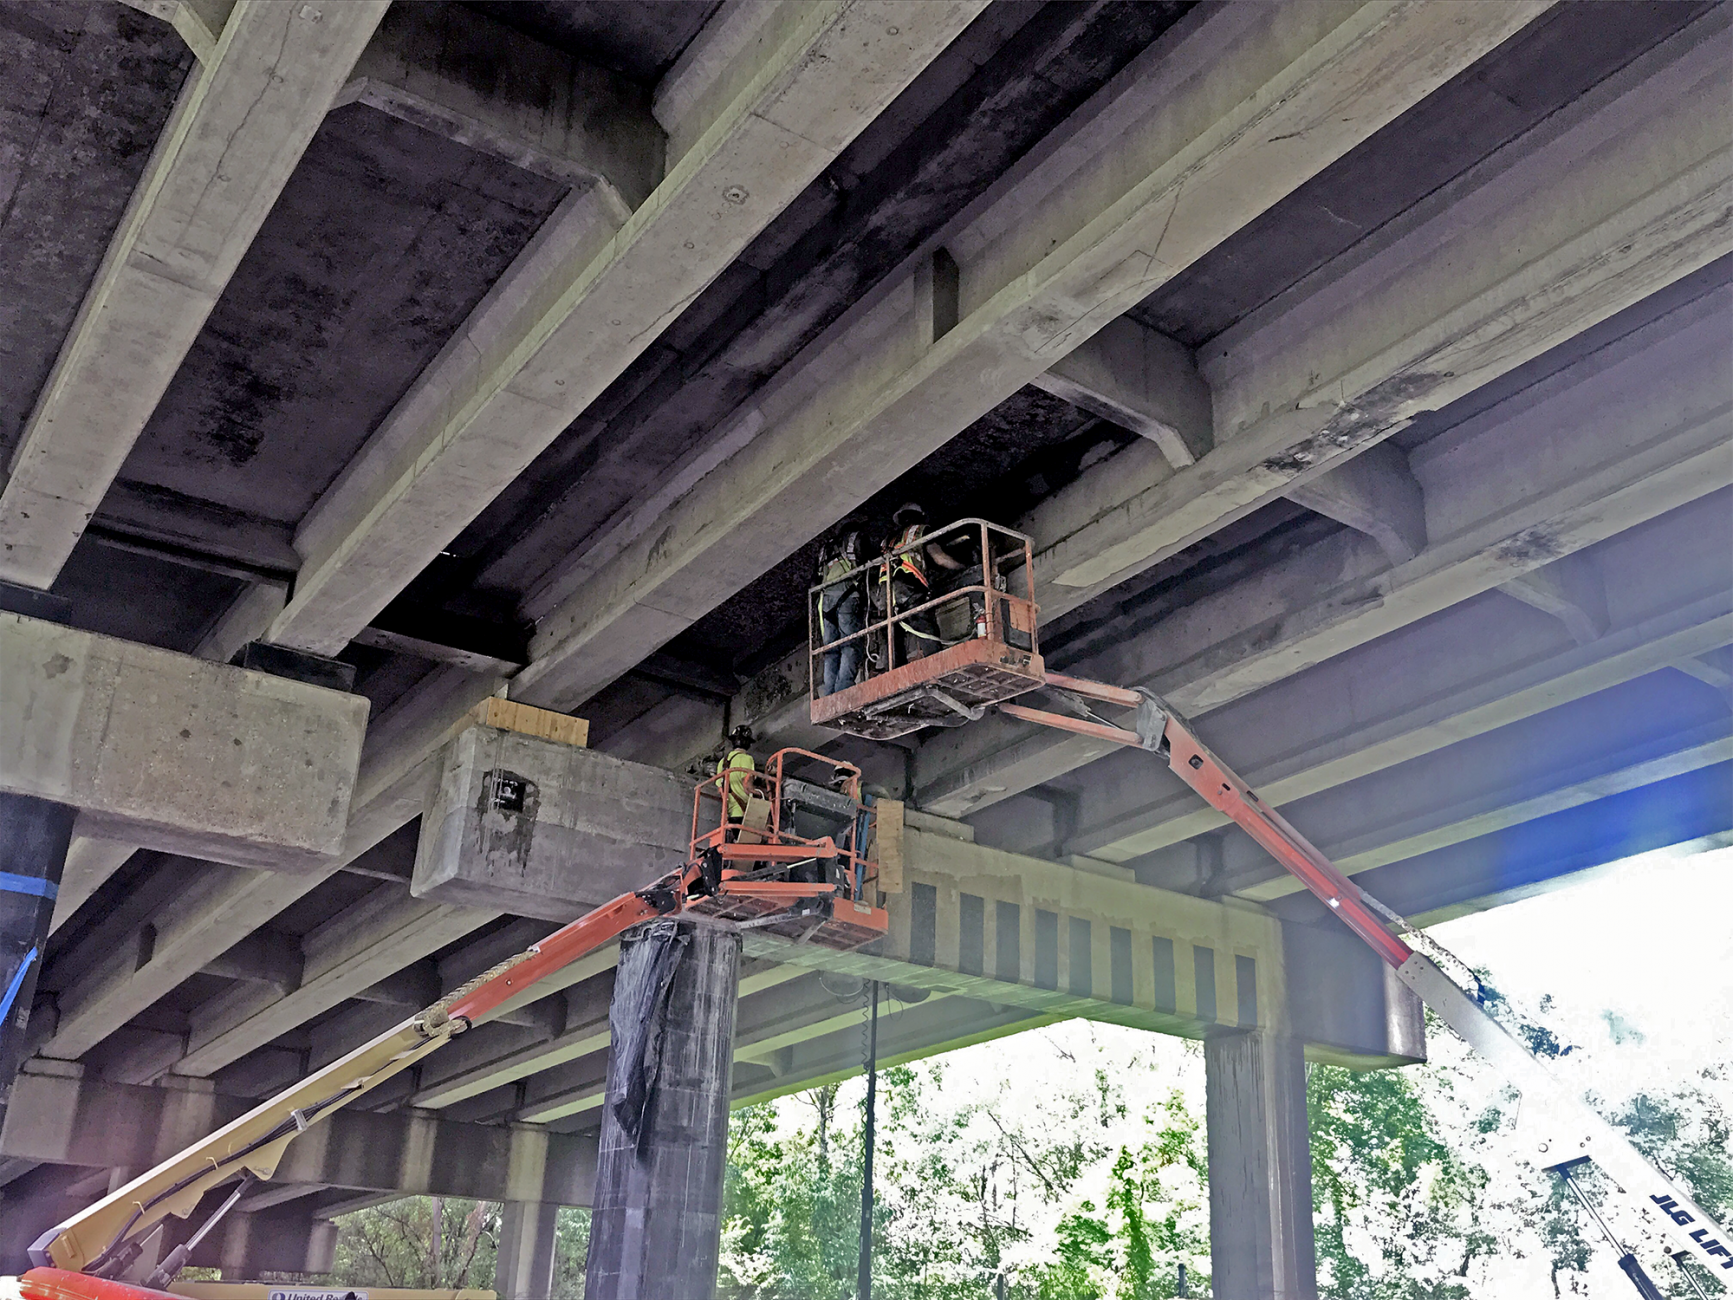 workers on lifts underneath a bridge